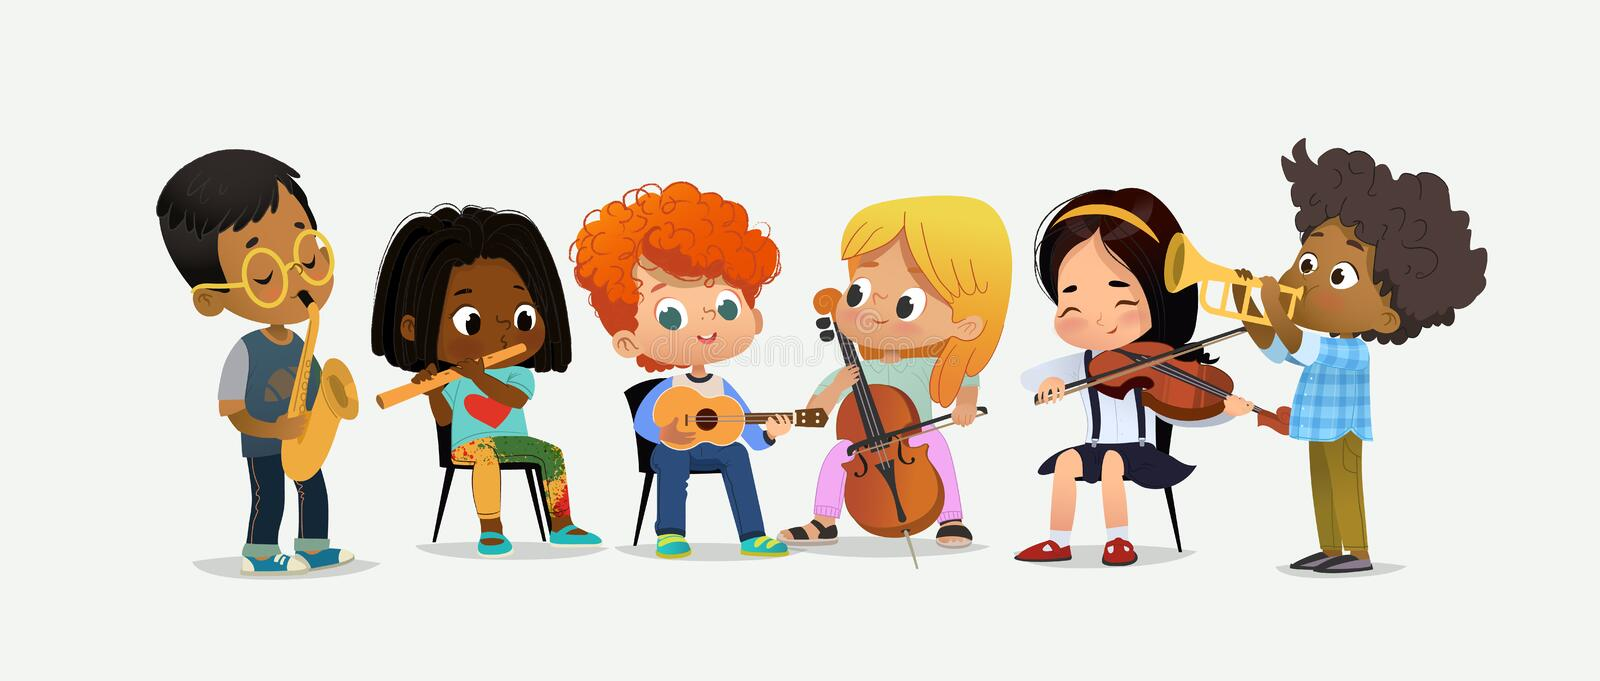 Children Orchestra Kids Play Various Music Instrument. Children Orchestra Play Various Music. Girl with Violin. Classroom Teenage Education. Funny Entertainment vector illustration